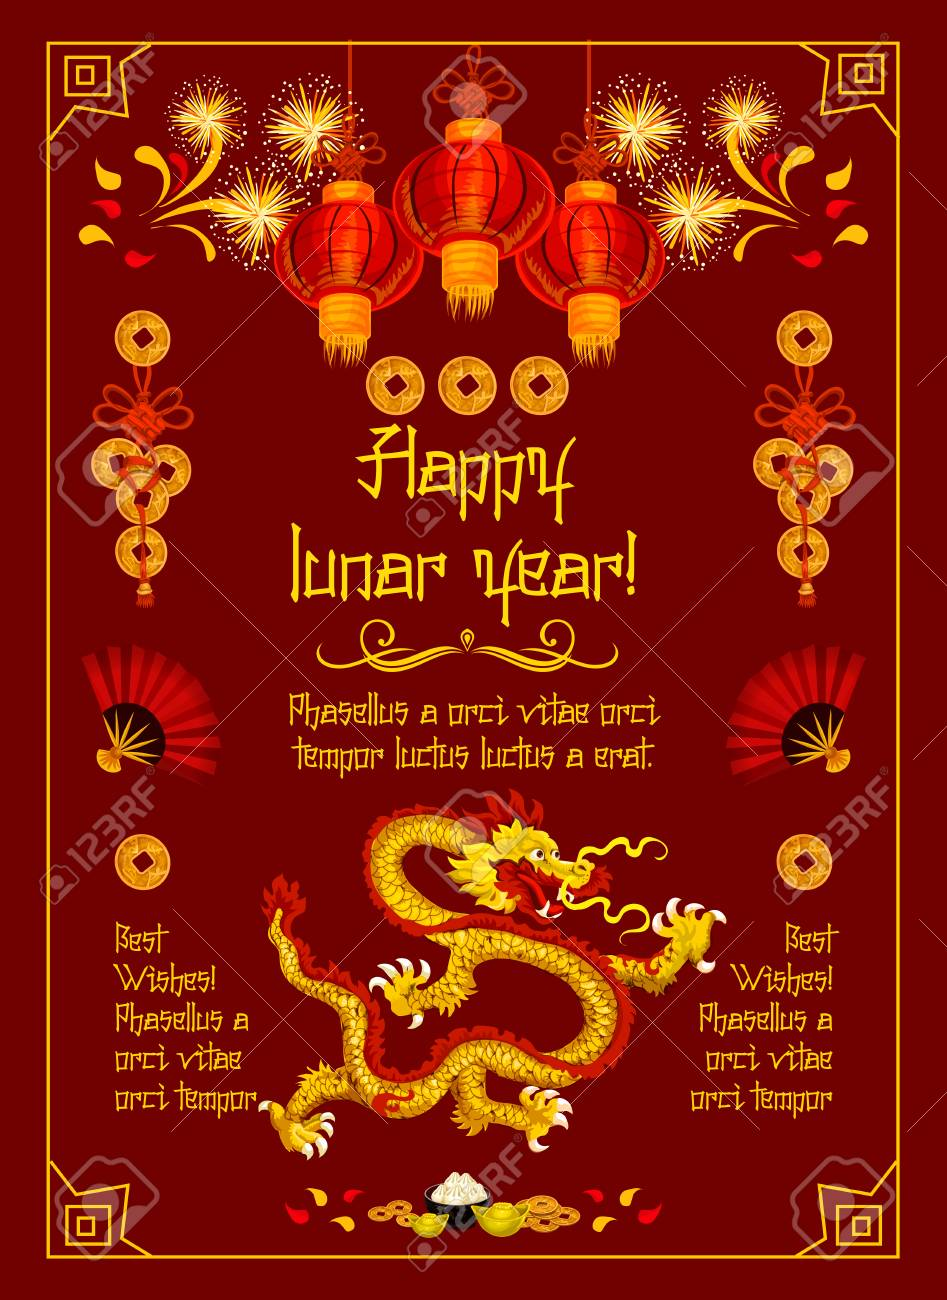 Chinese lunar new year holiday greeting banner spring festival chinese lunar new year holiday greeting banner spring festival red lantern dancing dragon and m4hsunfo